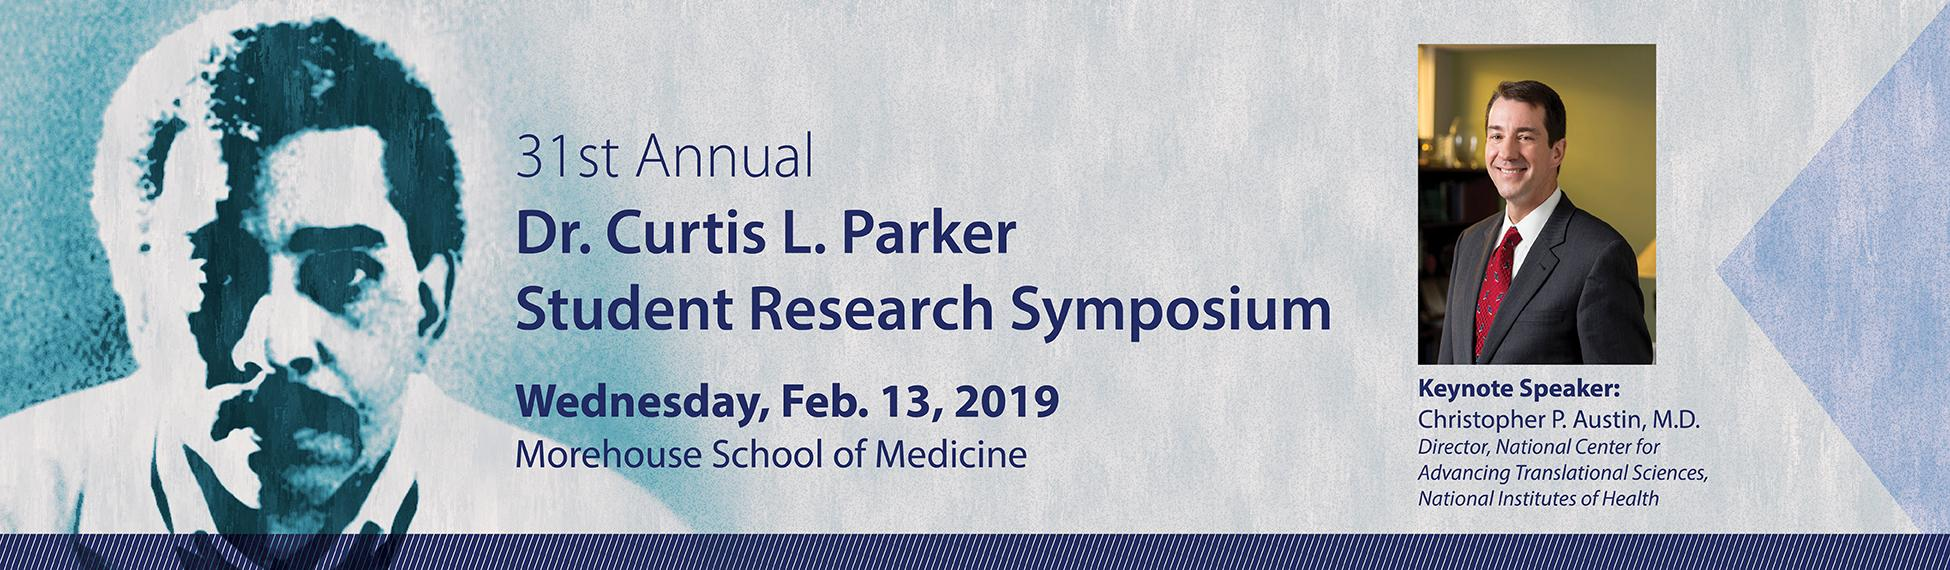 Dr. Curtis L. Parker Student Research Symposium